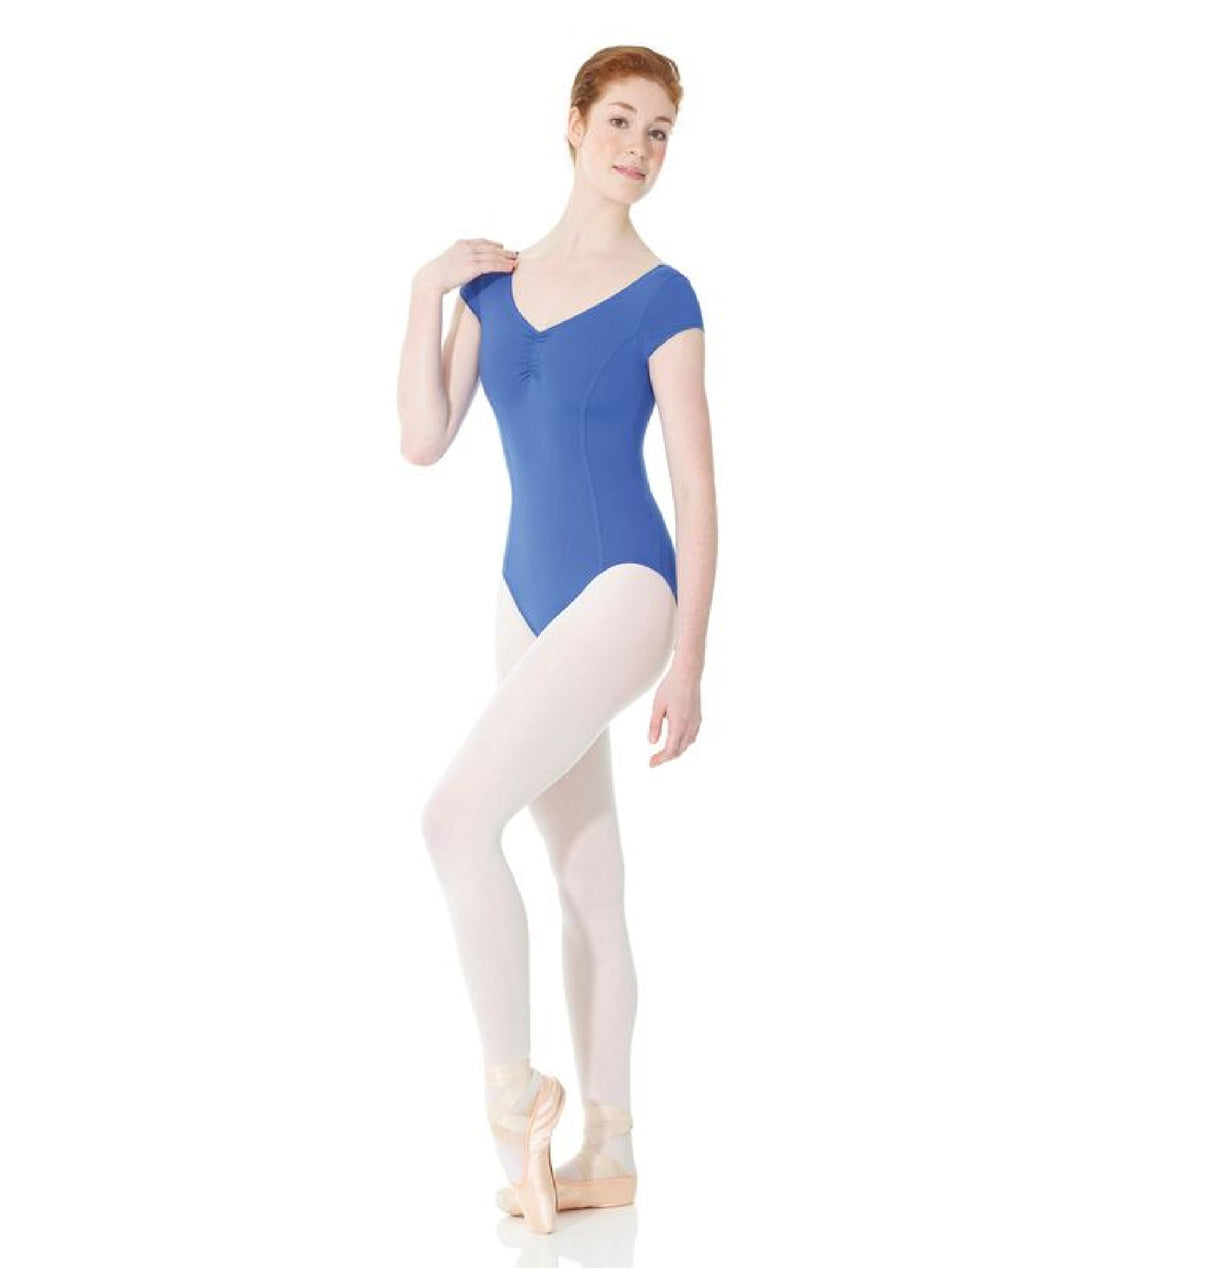 decfbcb92 Mondor 3506C - Pinch Front and Back Leotard Child